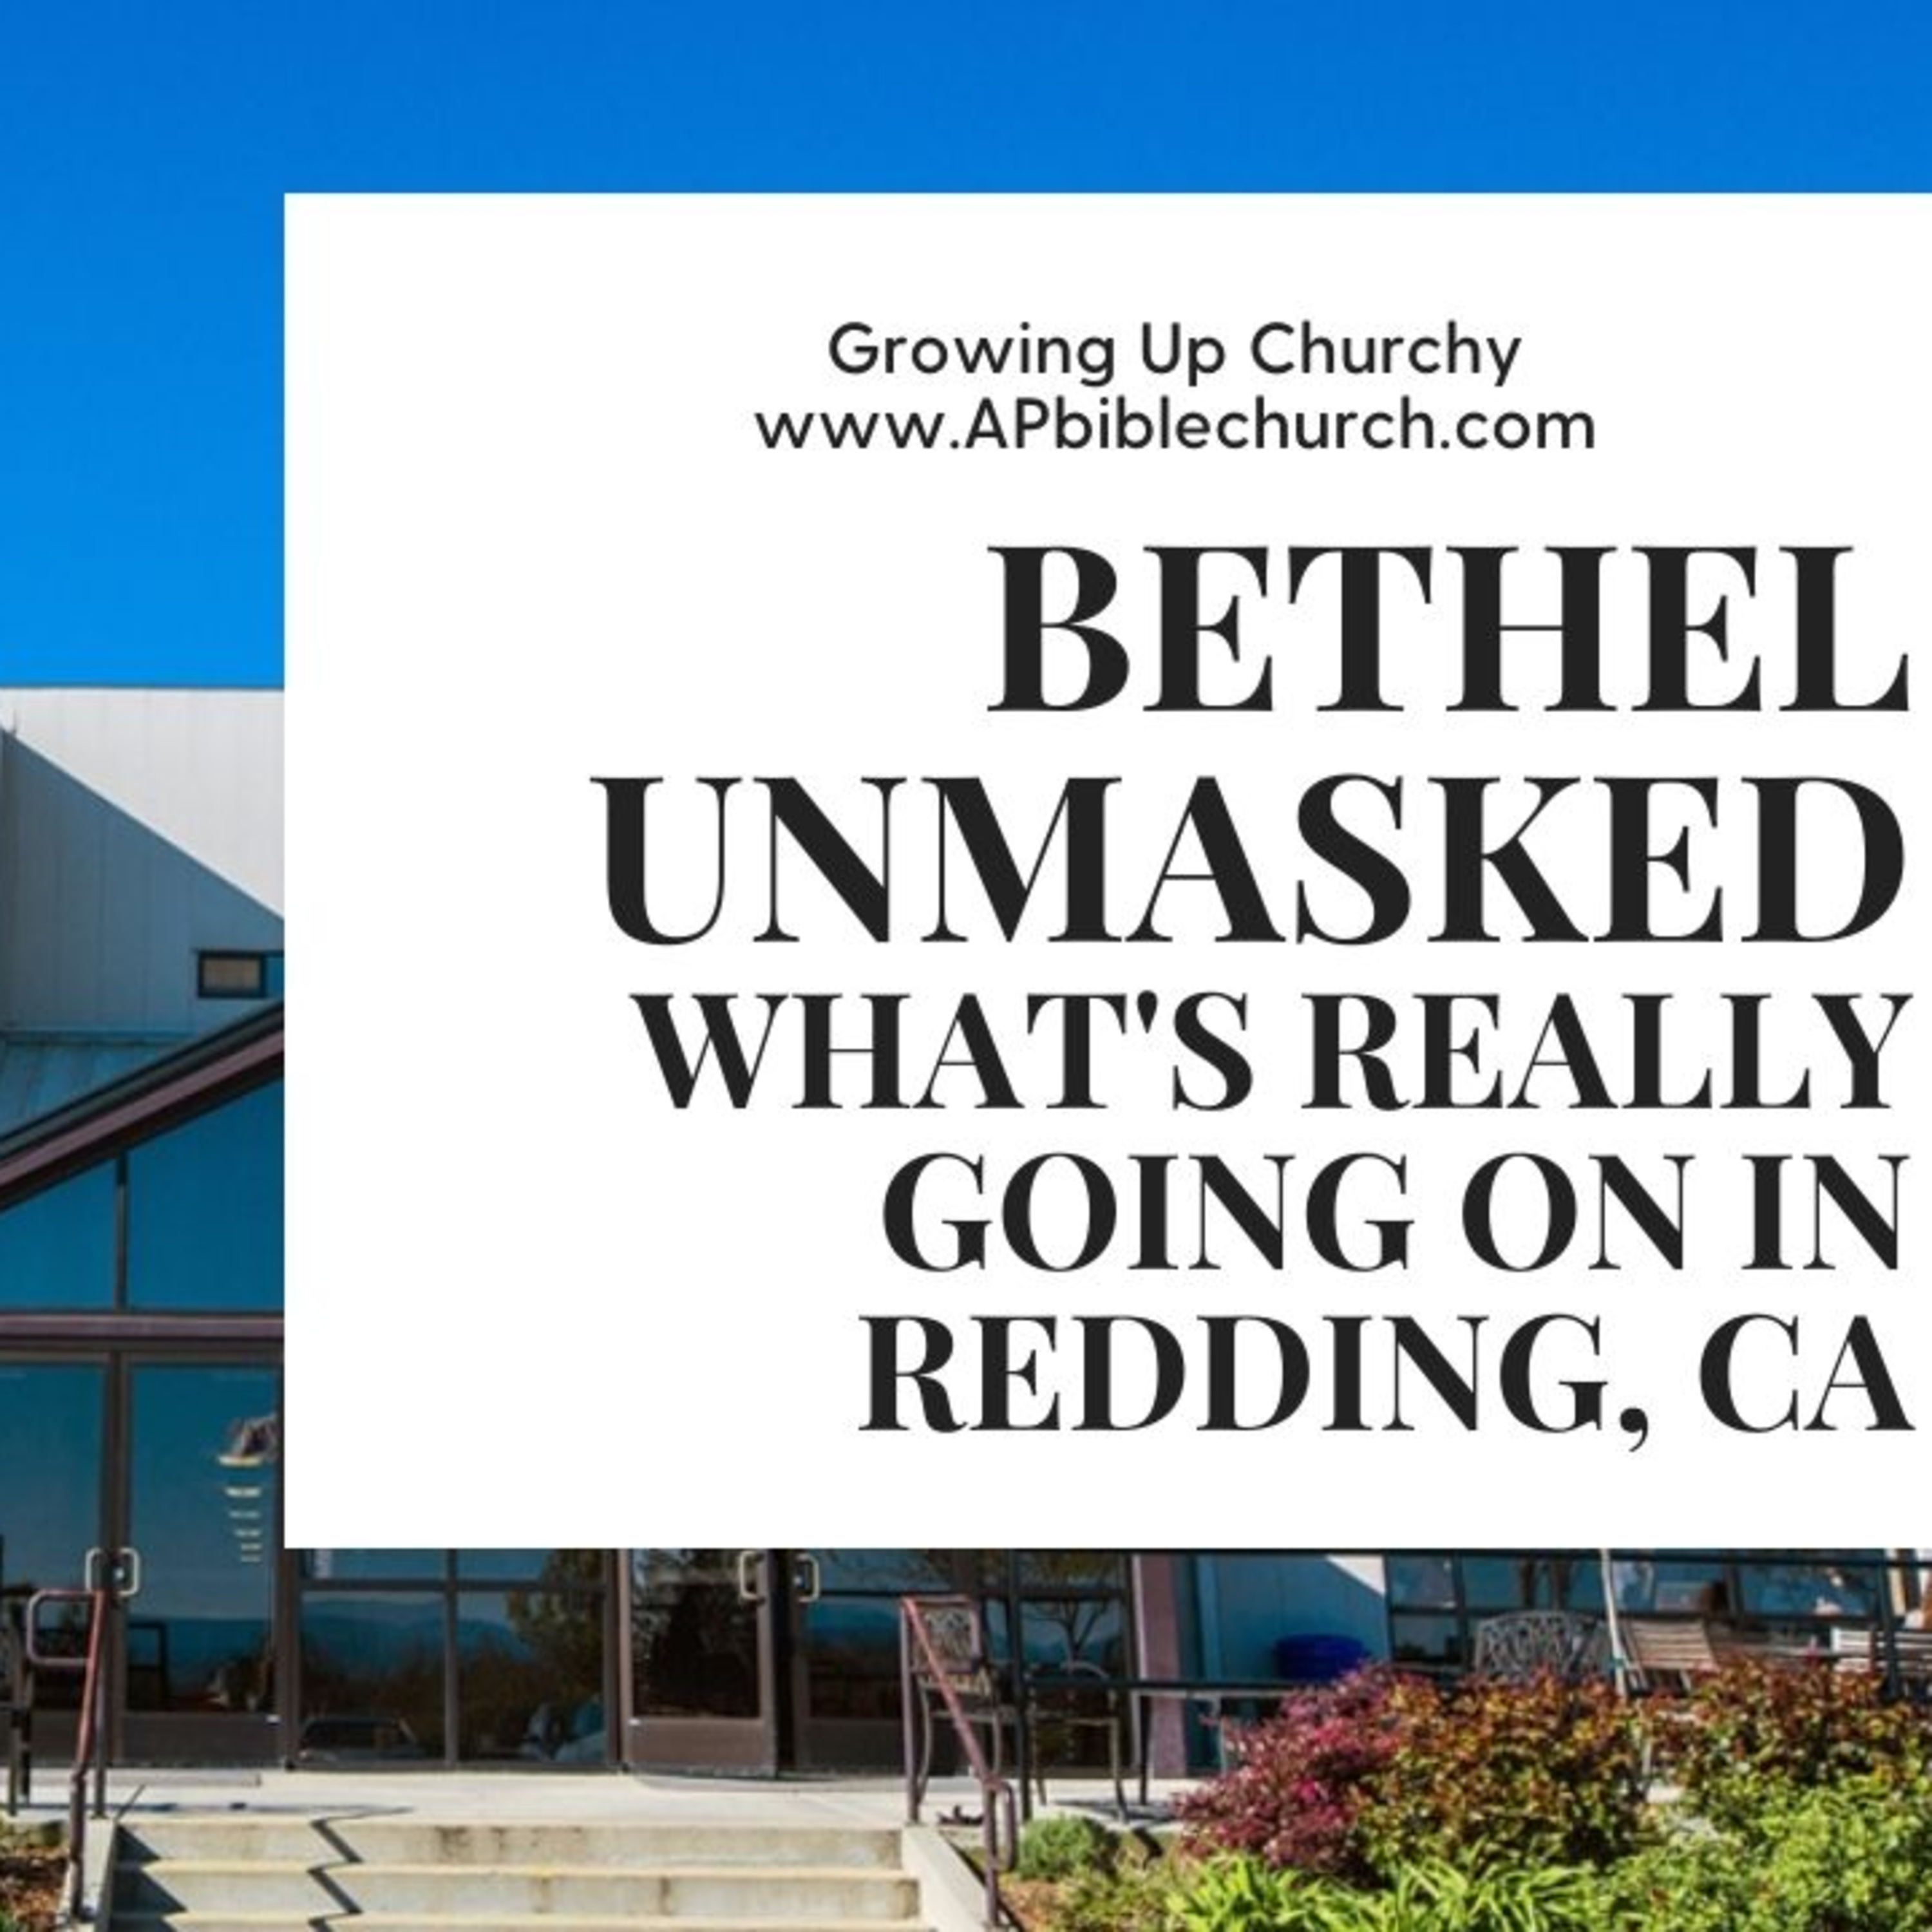 BETHEL UNMASKED : What's REALLY Going on in Redding, CA?!